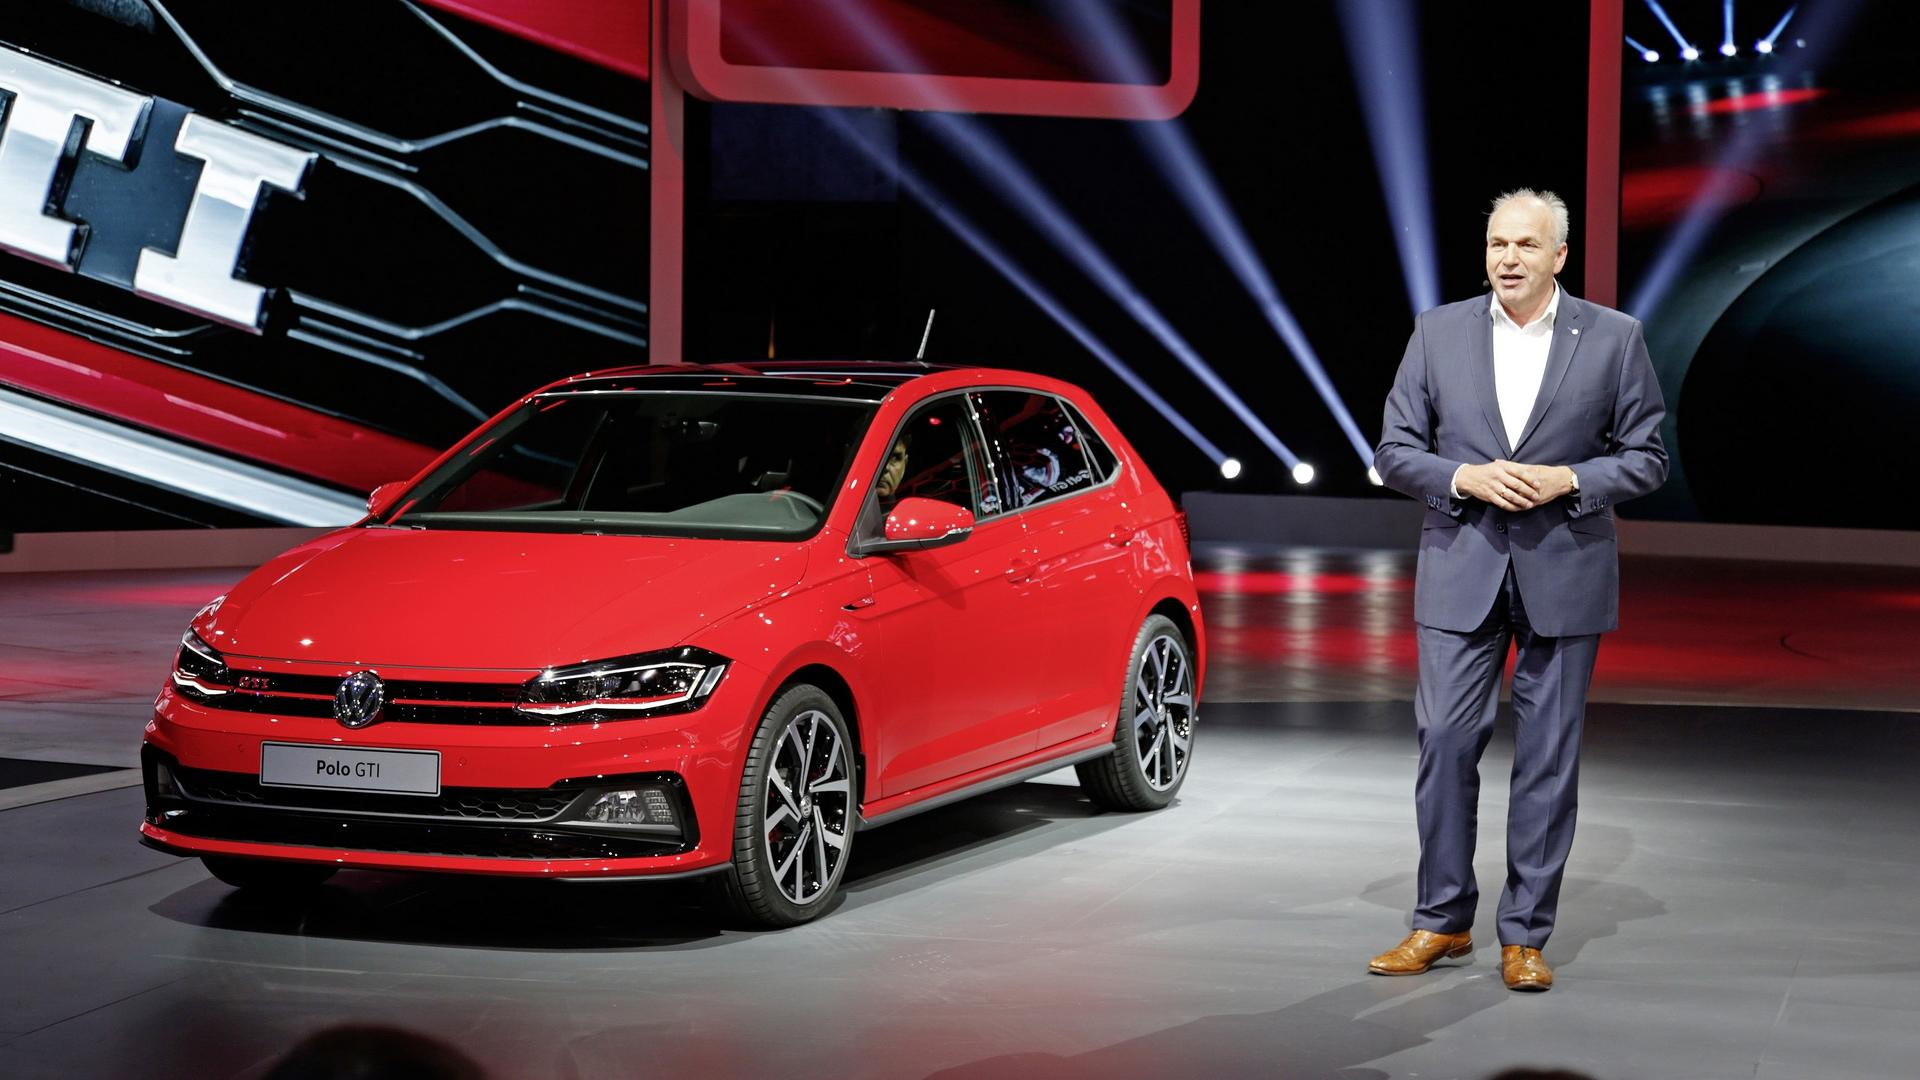 147 mph vw polo gti flexes its hot hatch muscles in frankfurt. Black Bedroom Furniture Sets. Home Design Ideas